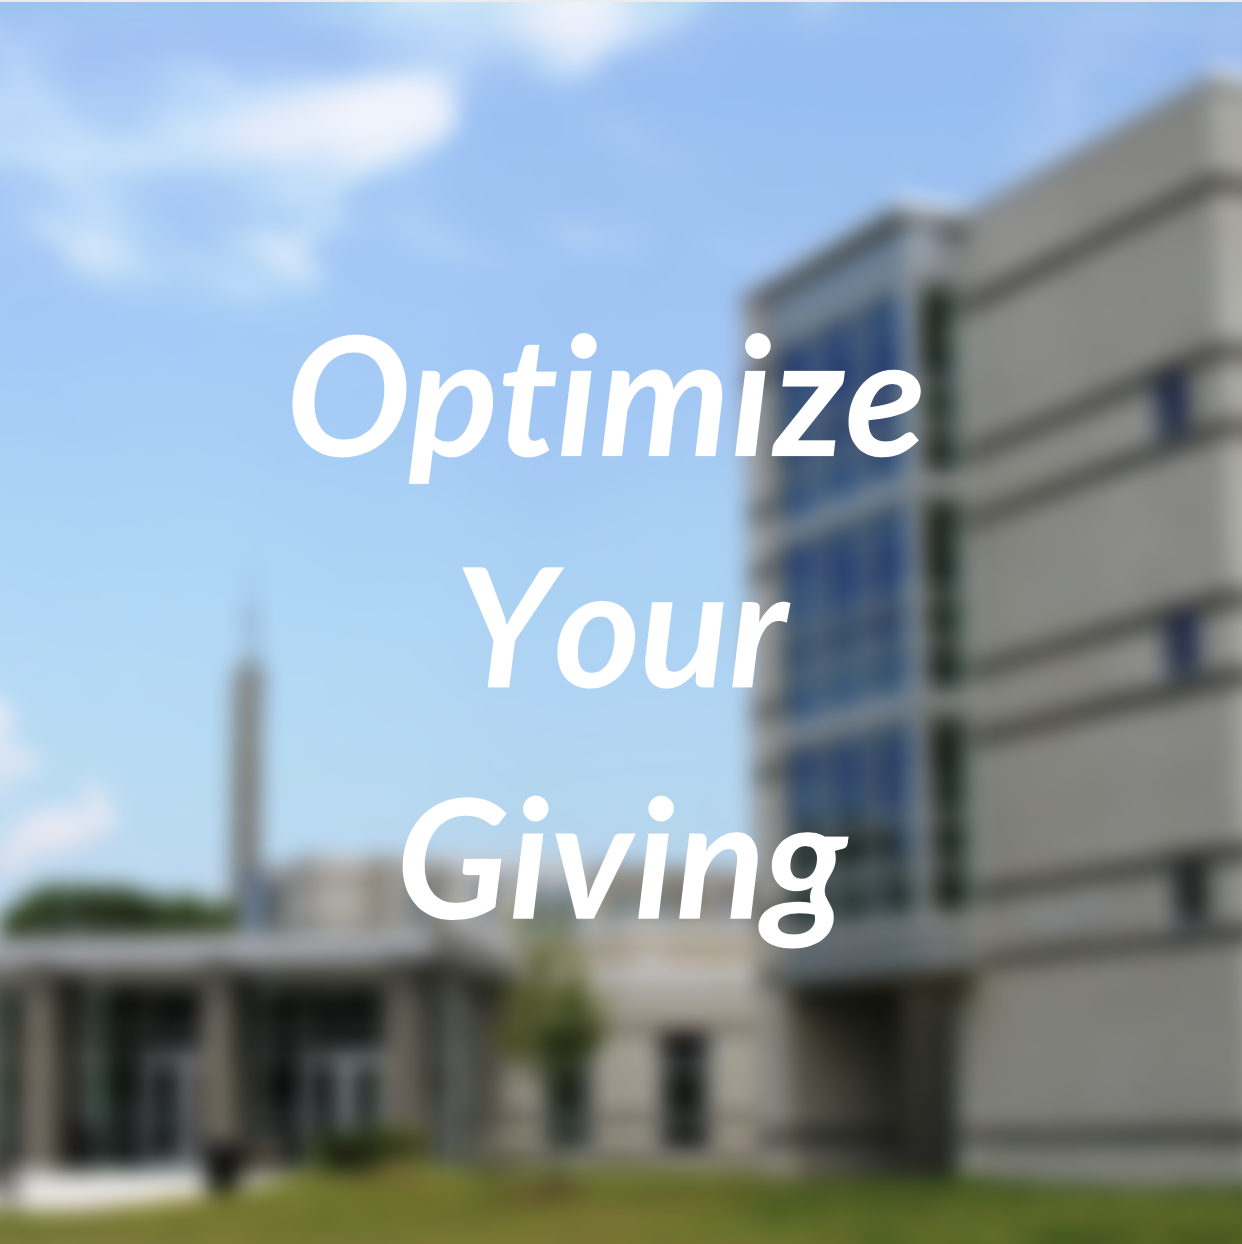 Optimize Your Giving